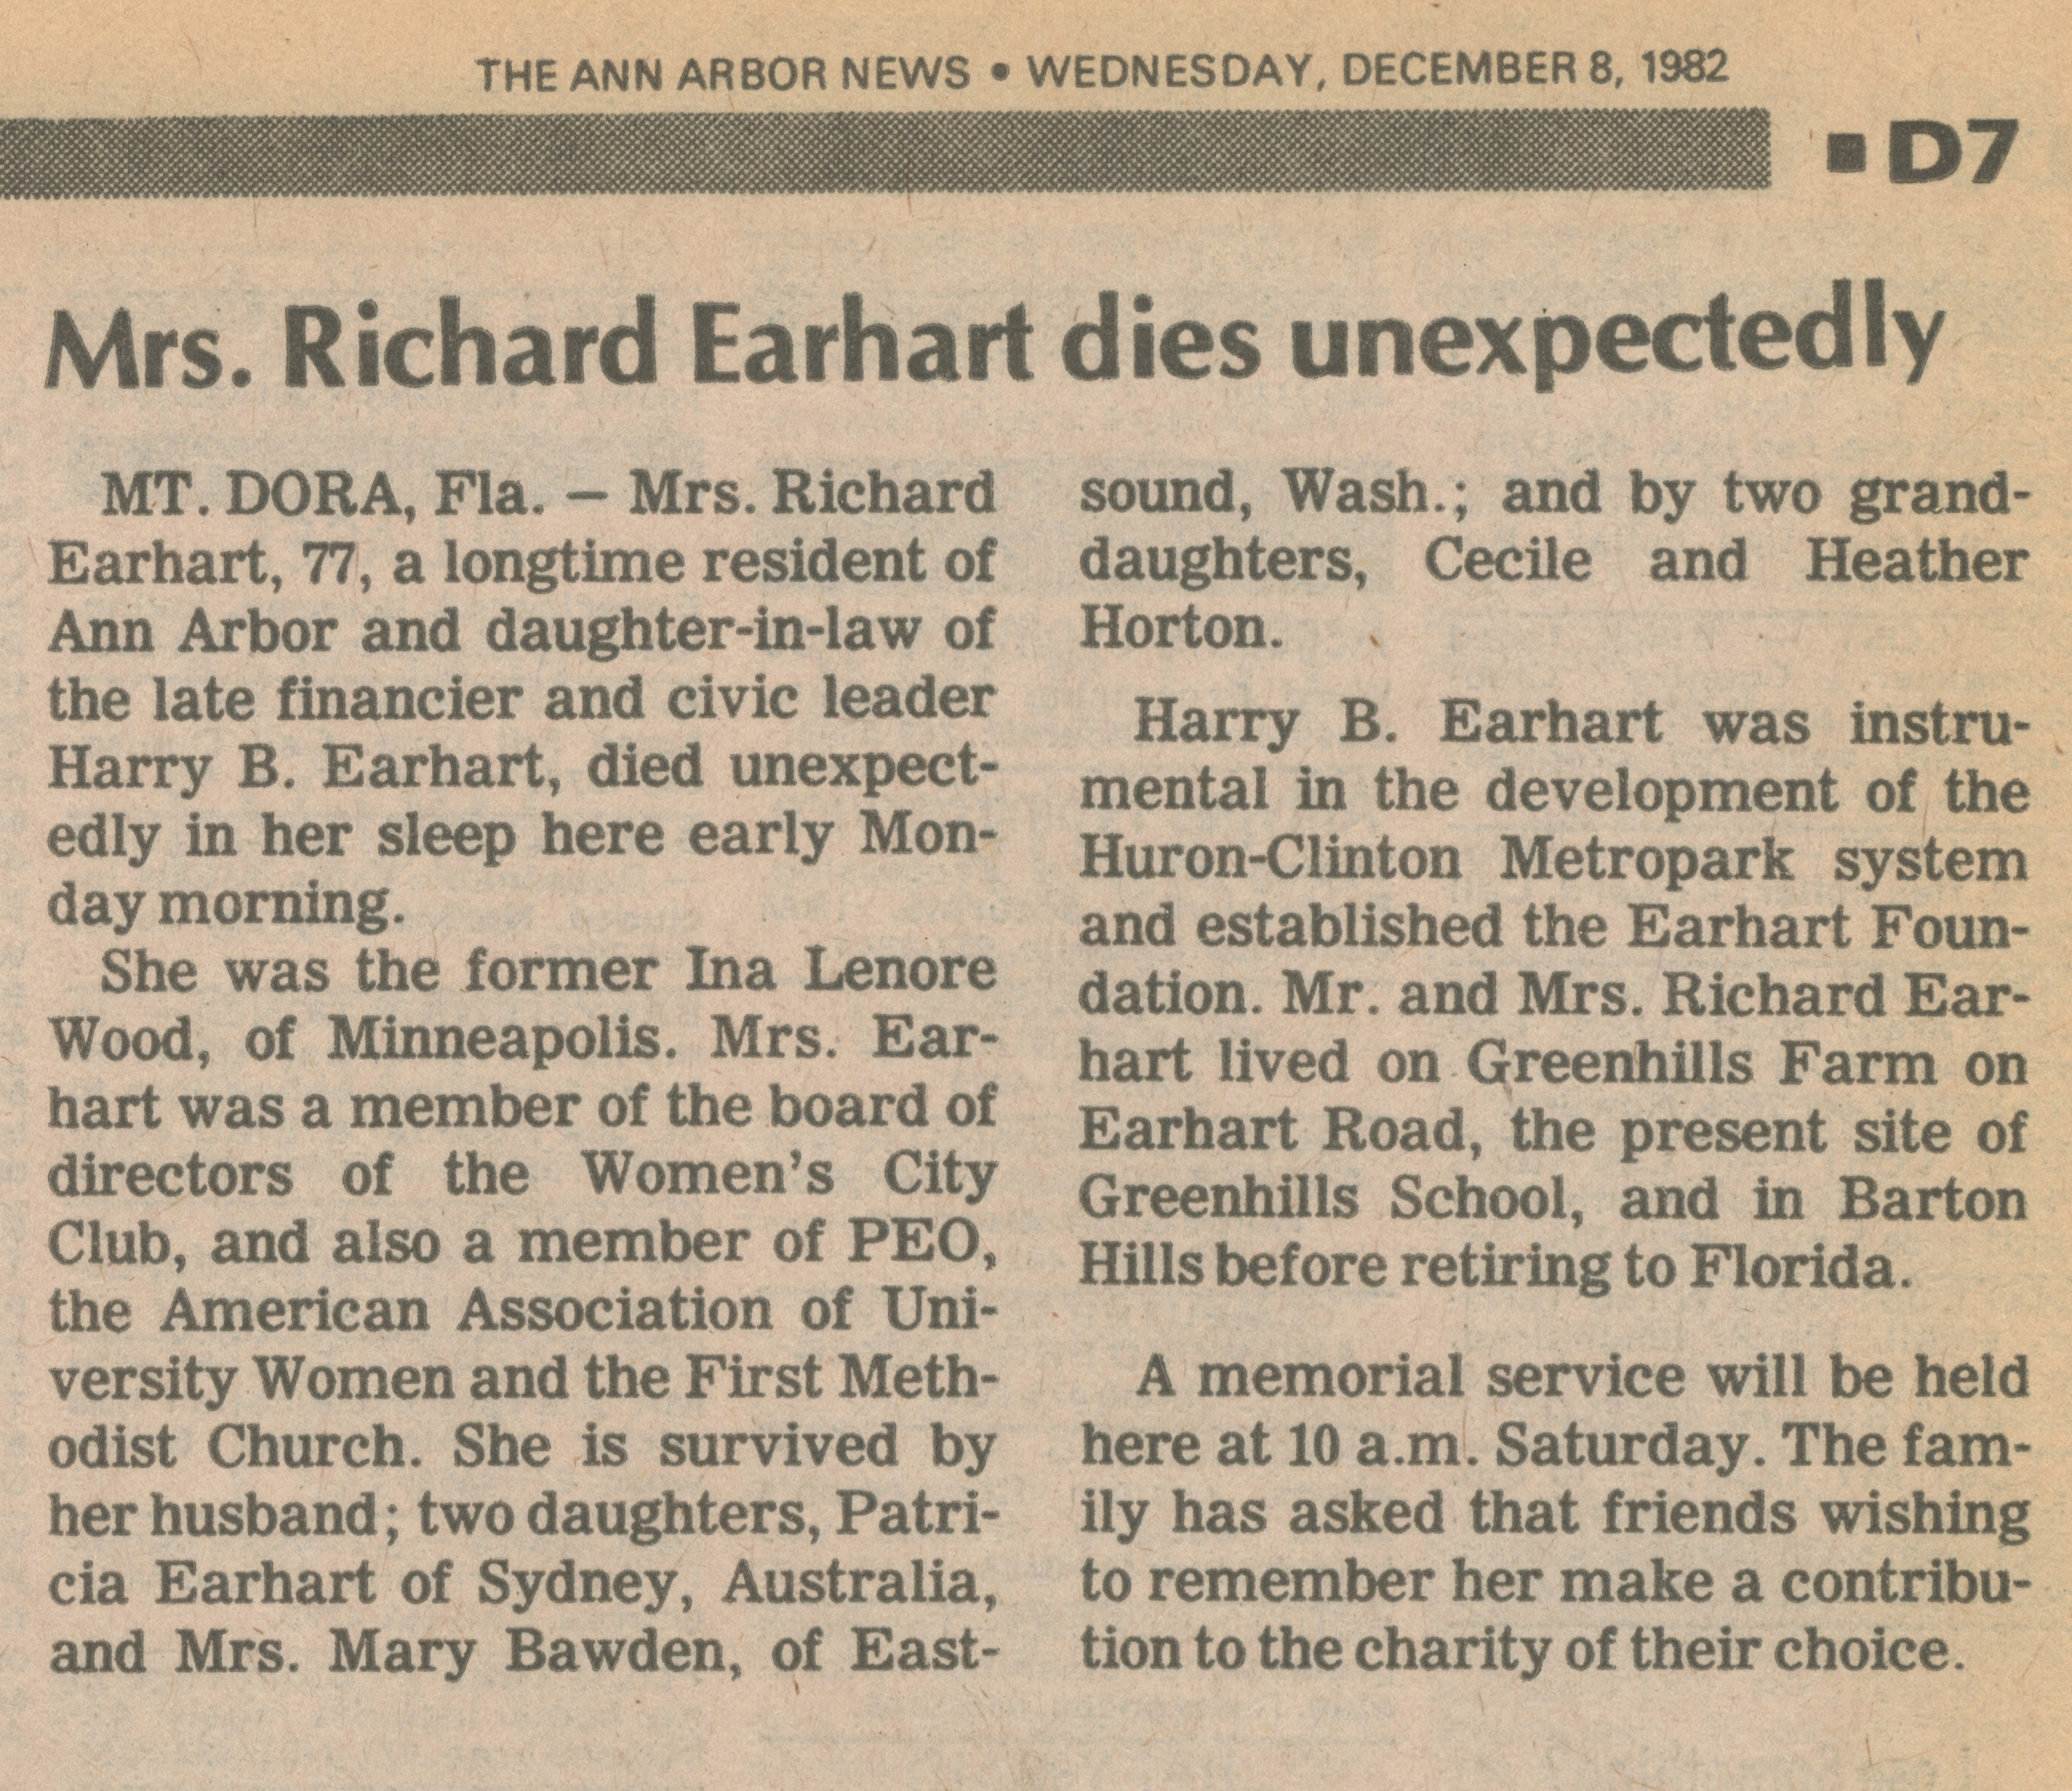 Mrs. Richard Earhart dies unexpectedly image